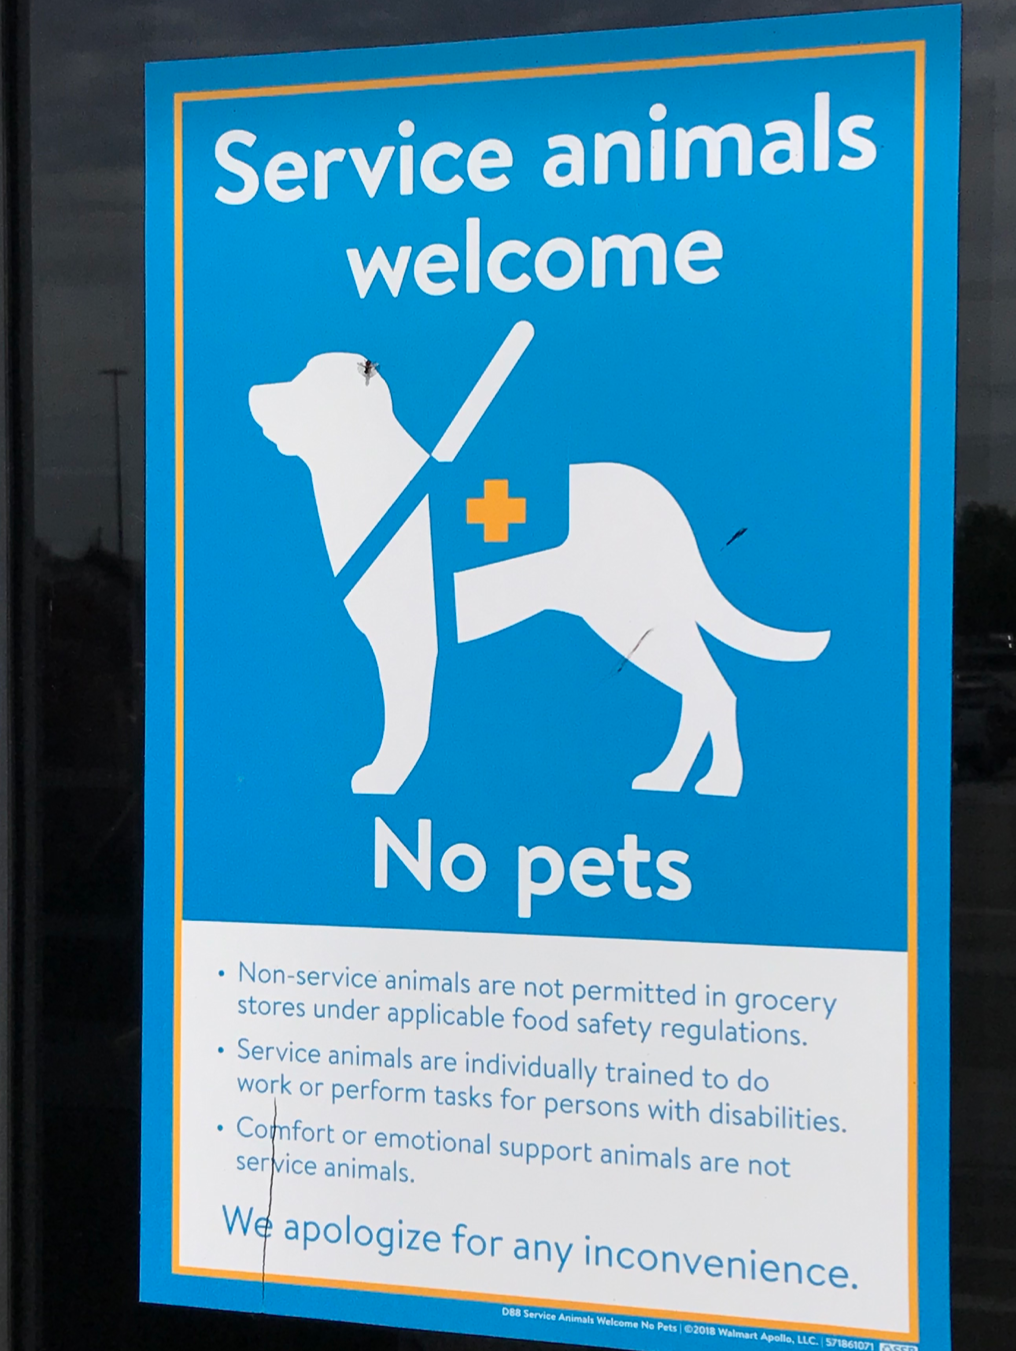 We are not service animals